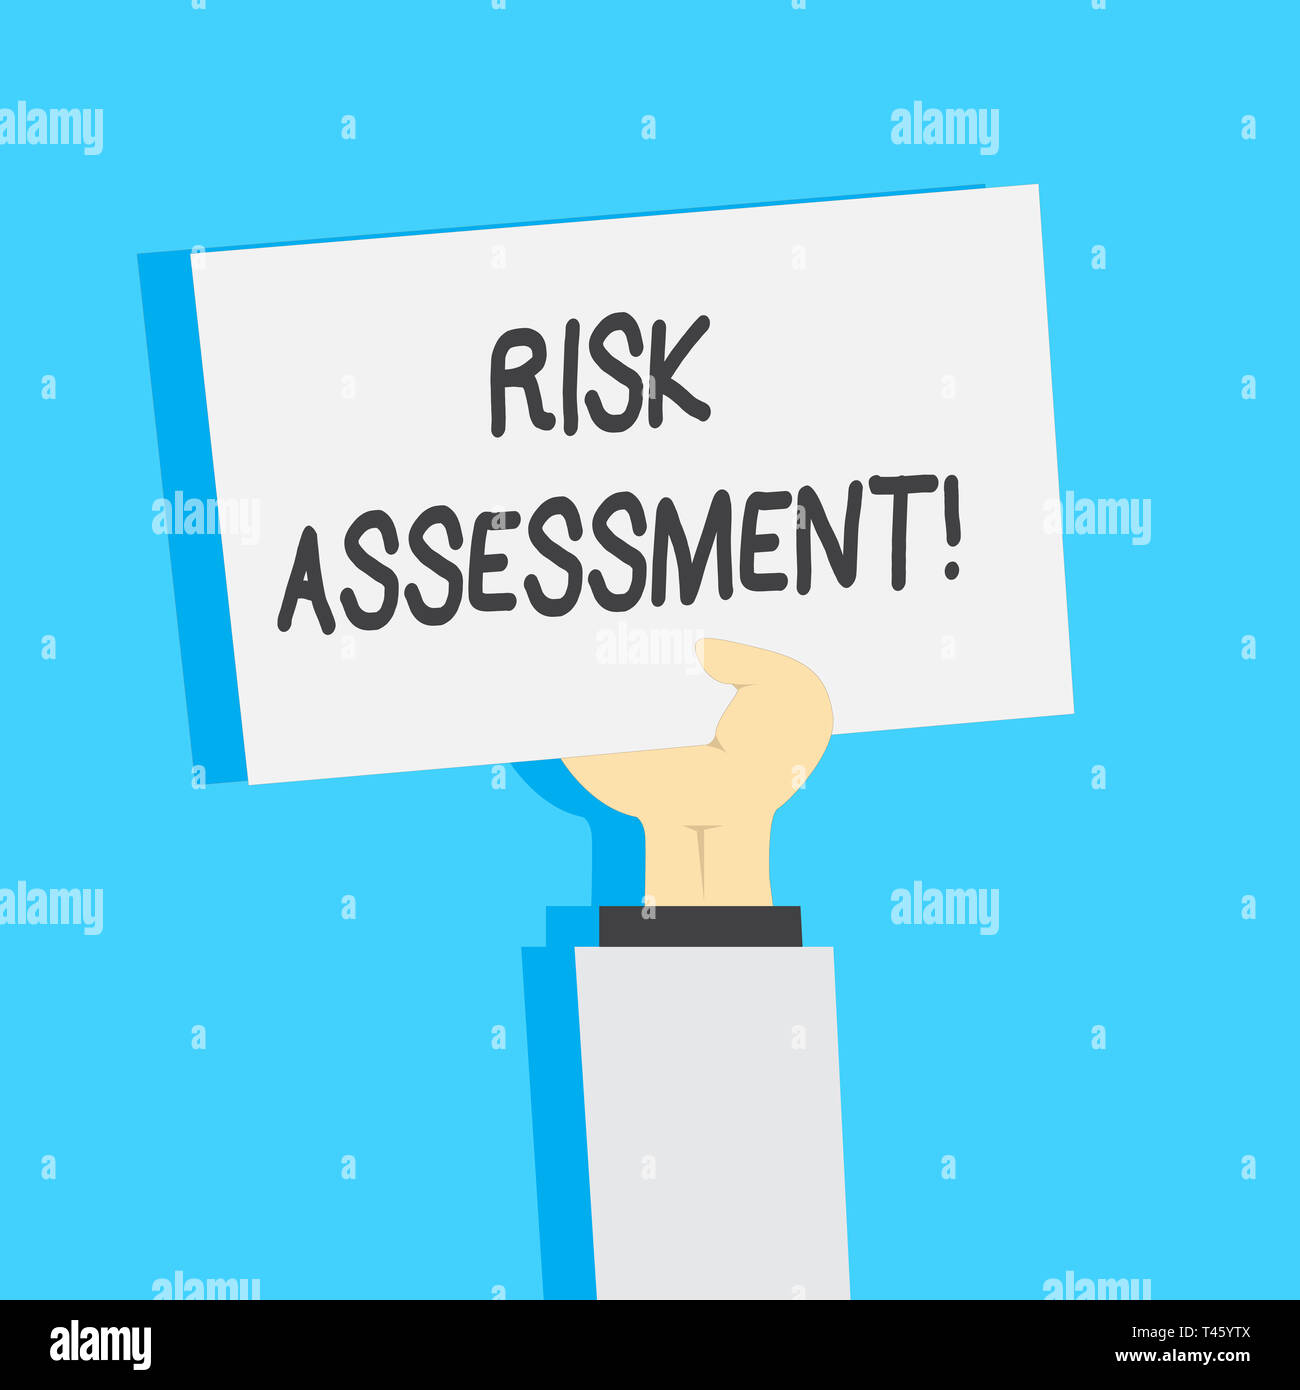 Handwriting Text Writing Risk Assessment Conceptual Photo Evaluating Potential Risks Involved Projected Activity Clipart Of Hand Holding Up Blank She Stock Photo Alamy Free download and use them in in are you looking for the best assessment clipart for your personal blogs, projects or designs, then. https www alamy com handwriting text writing risk assessment conceptual photo evaluating potential risks involved projected activity clipart of hand holding up blank she image243535402 html